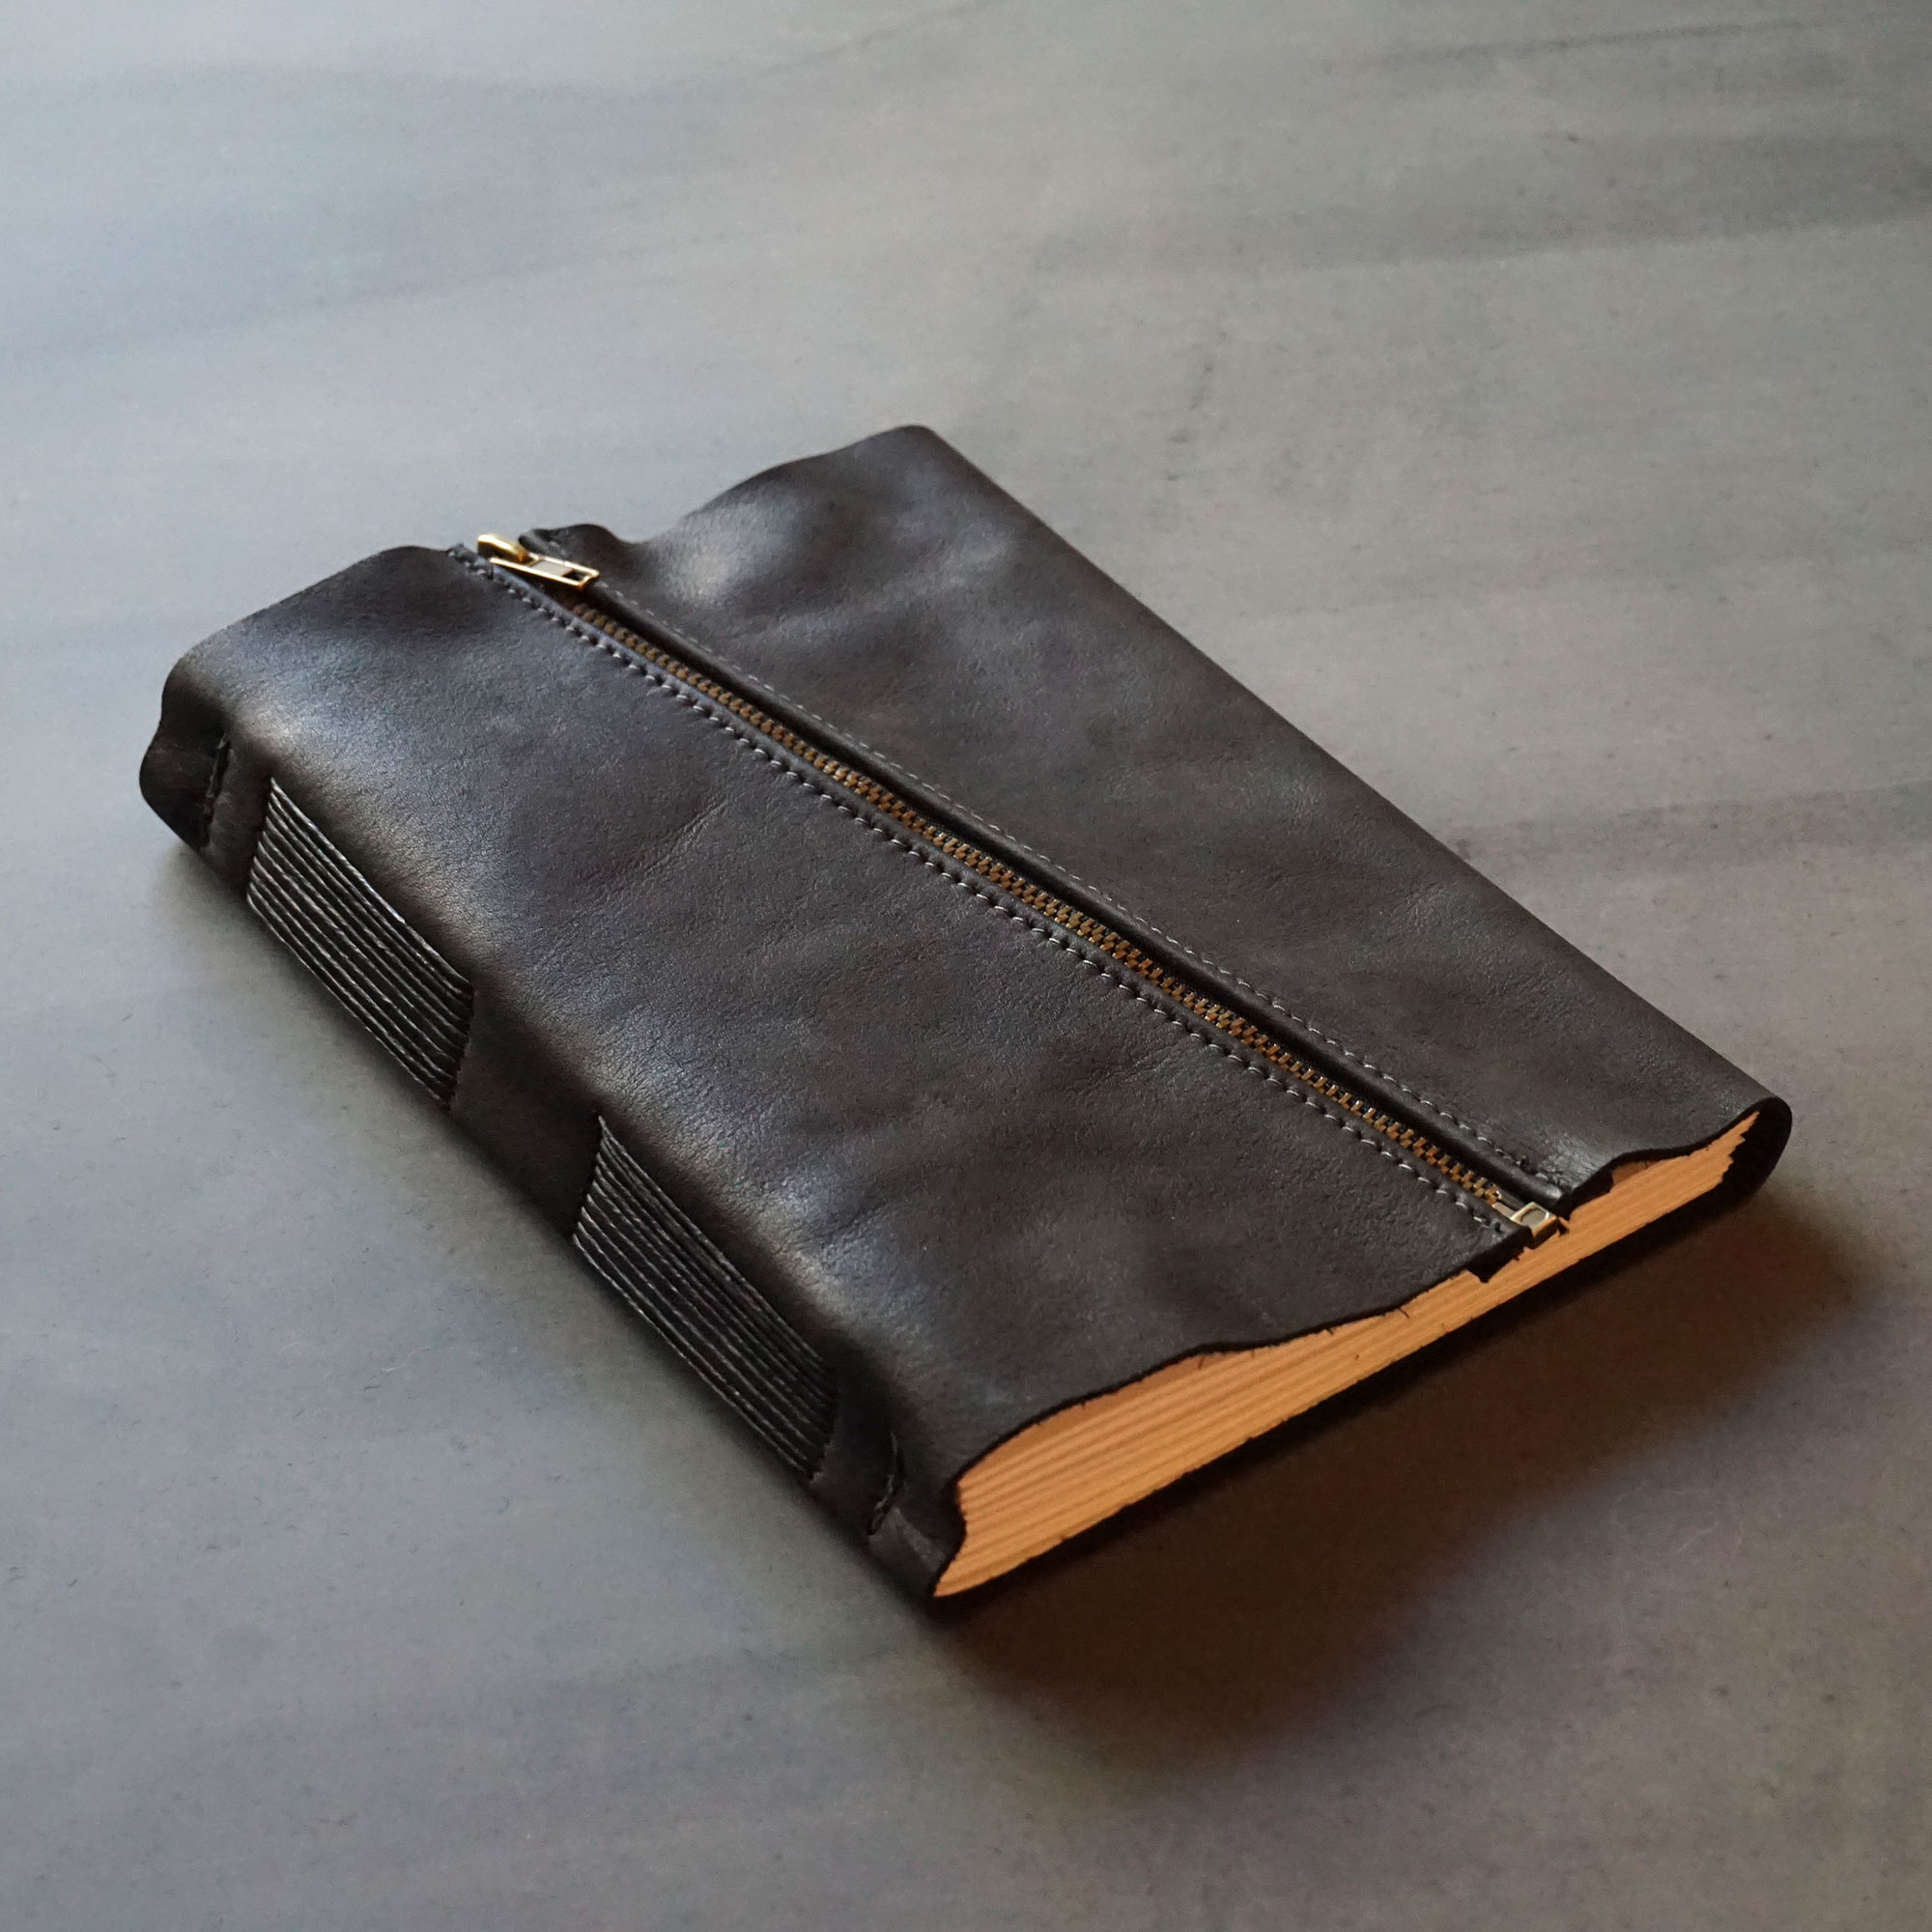 This journal has a rugged approach with its black buffalo hide and antique brass zip closure